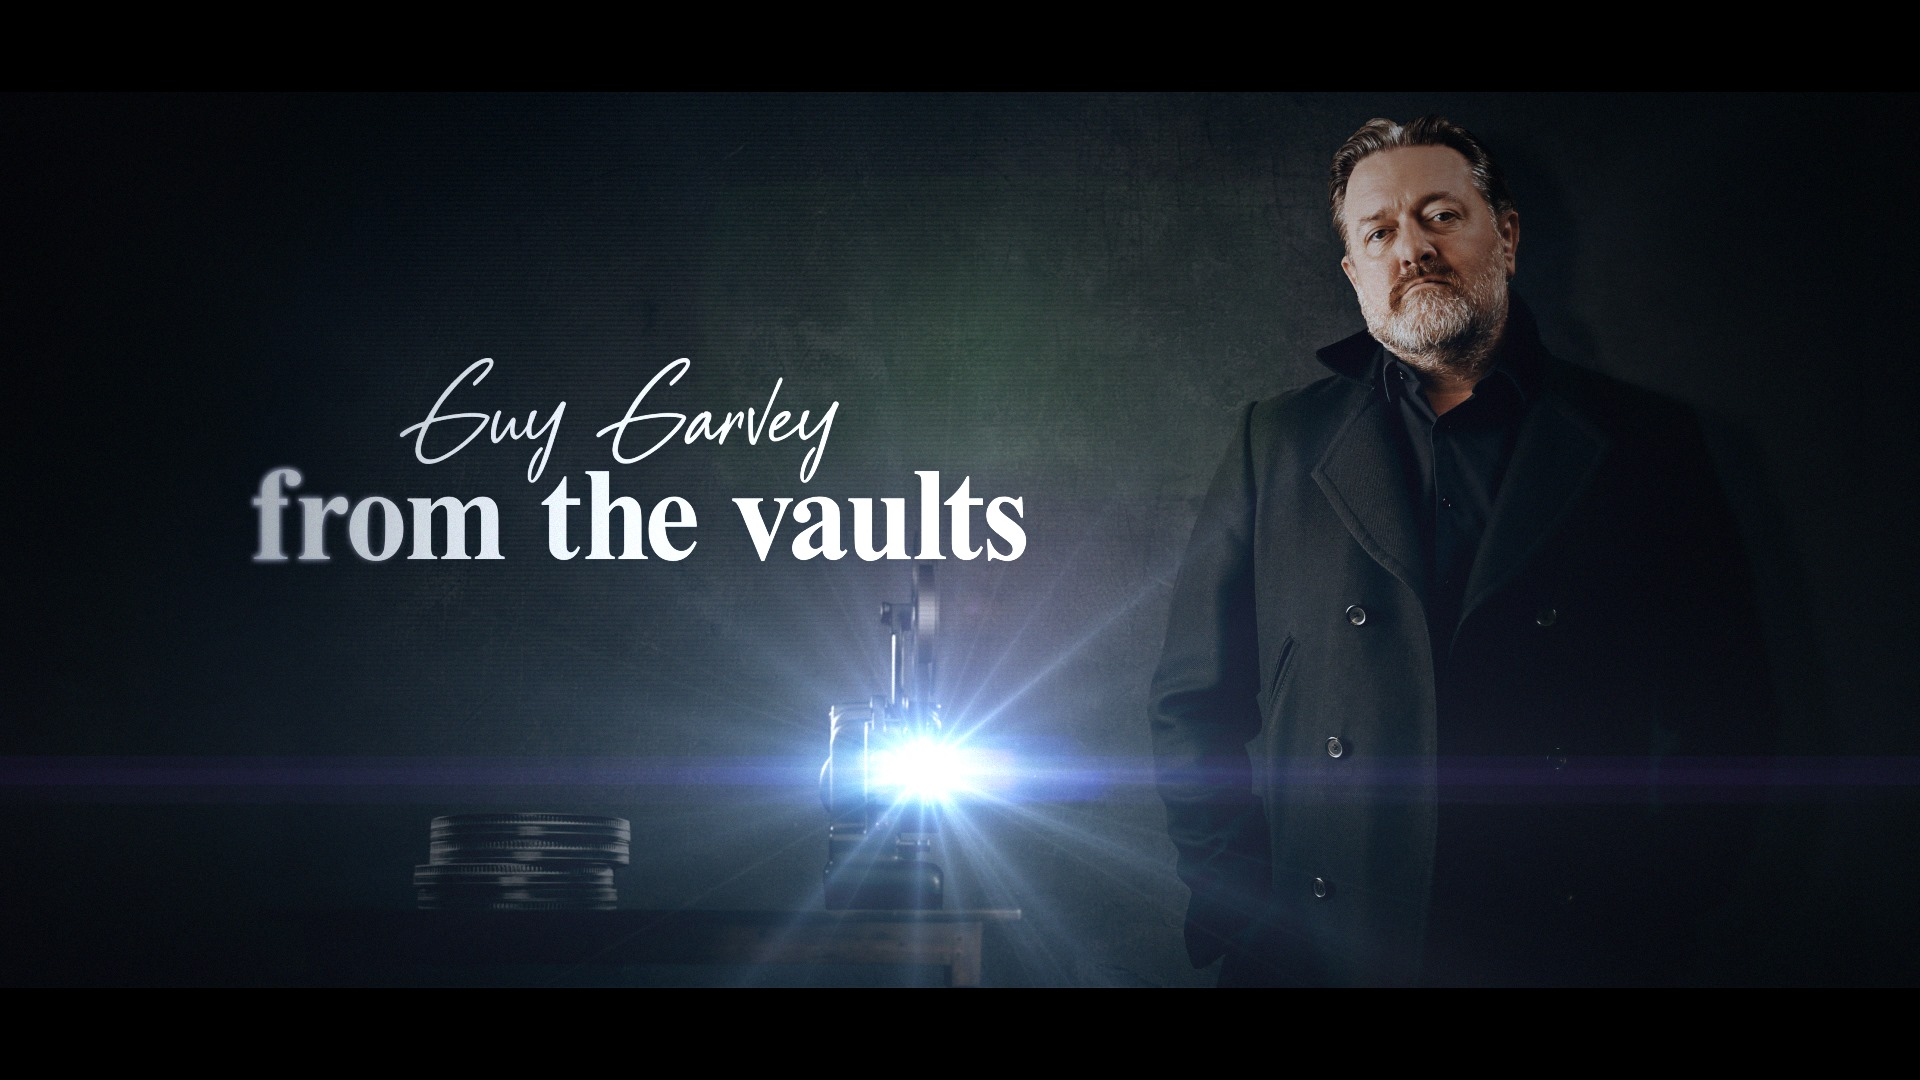 WISE OWL FILMS LAND FIRST SKY ARTS COMMISSION WITH  GUY GARVEY: FROM THE VAULTS